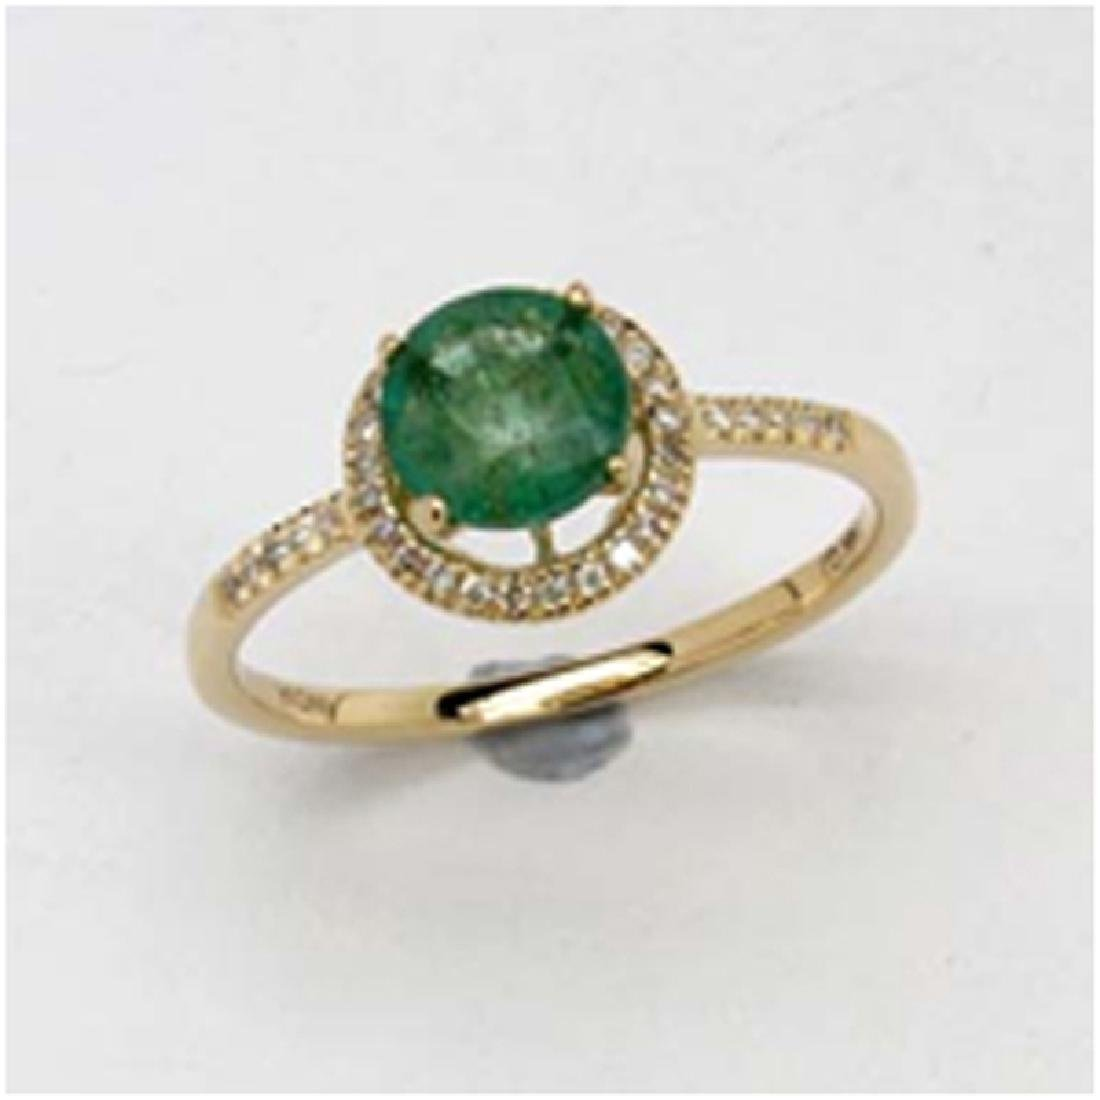 *Fine Jewelry 14K Gold, 1.98CT Zambian Emerald Round